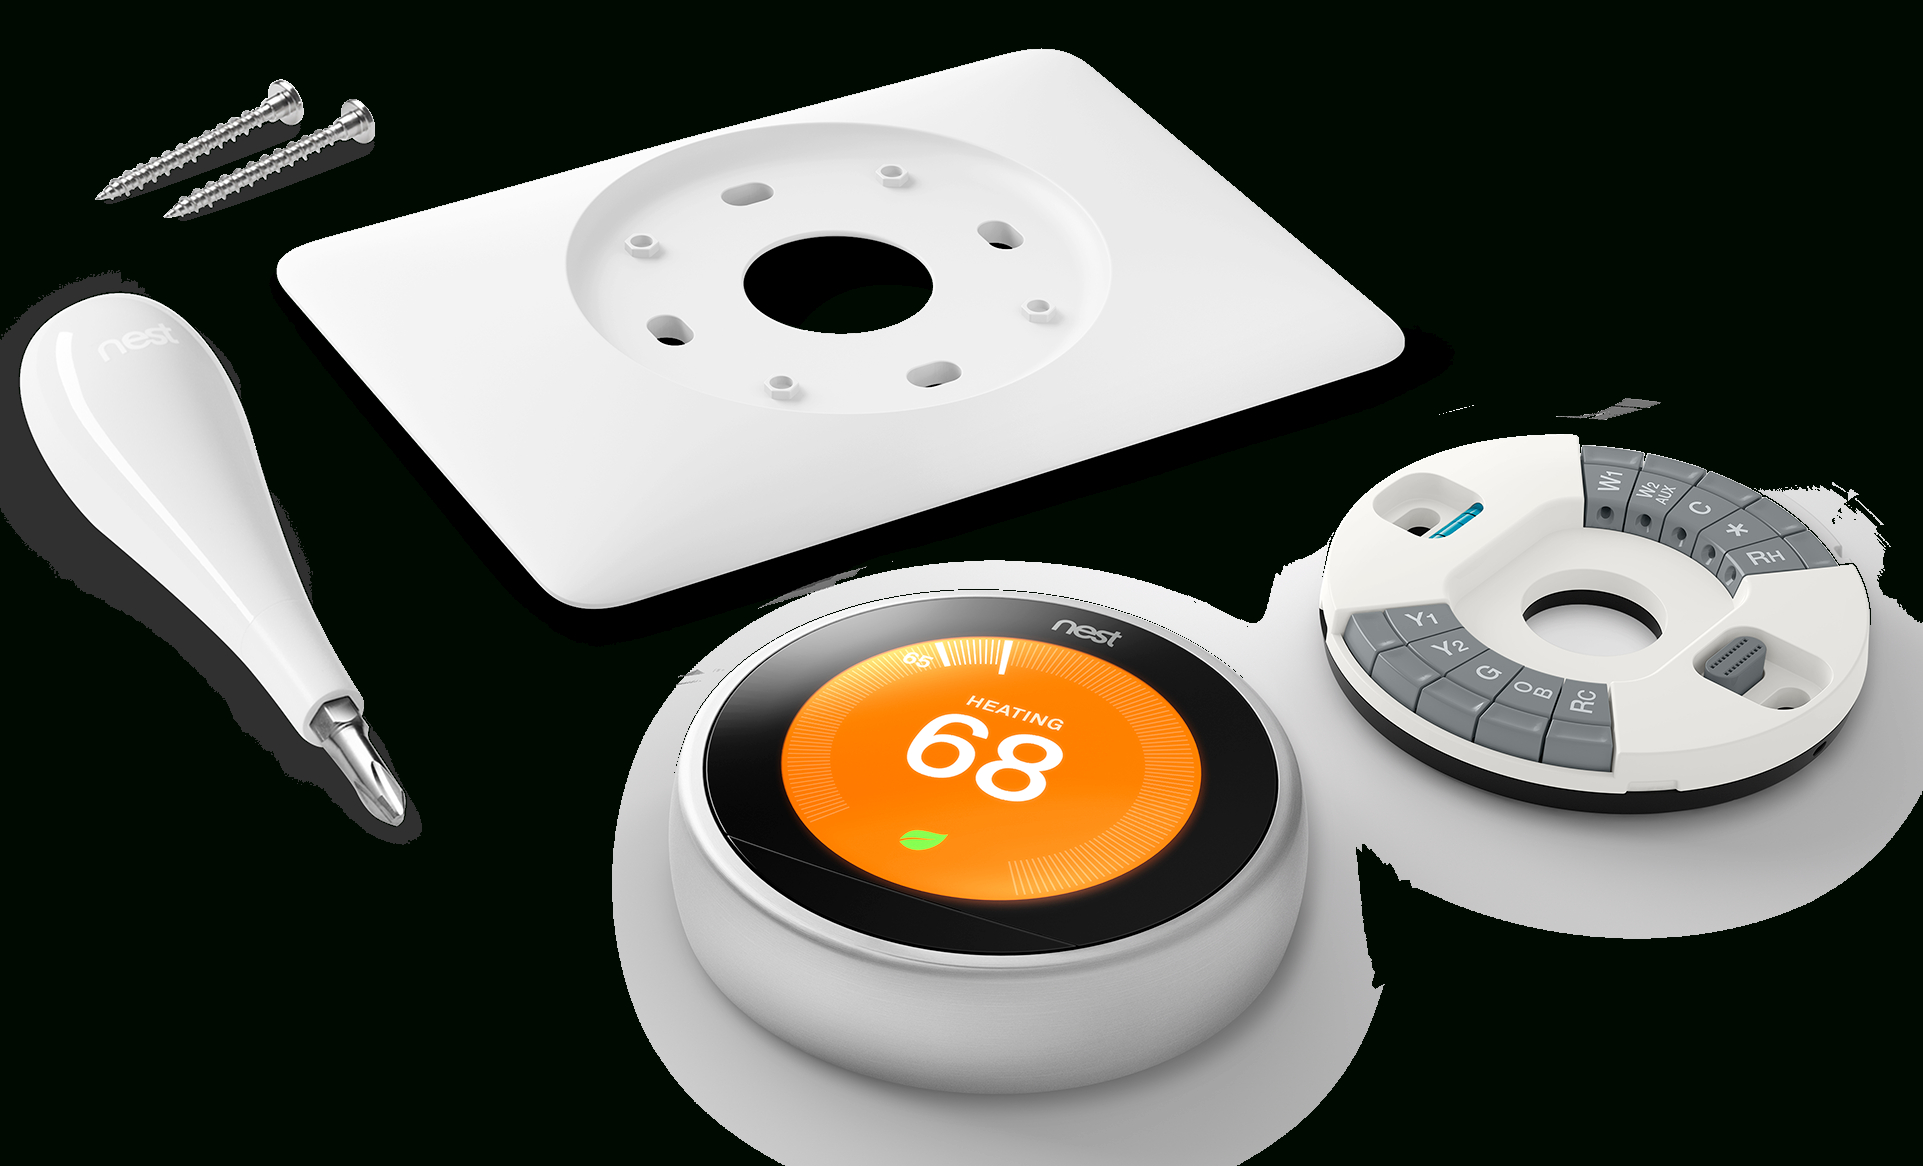 How To Install Your Nest Thermostat - Nest E Thermostat Wiring Diagram